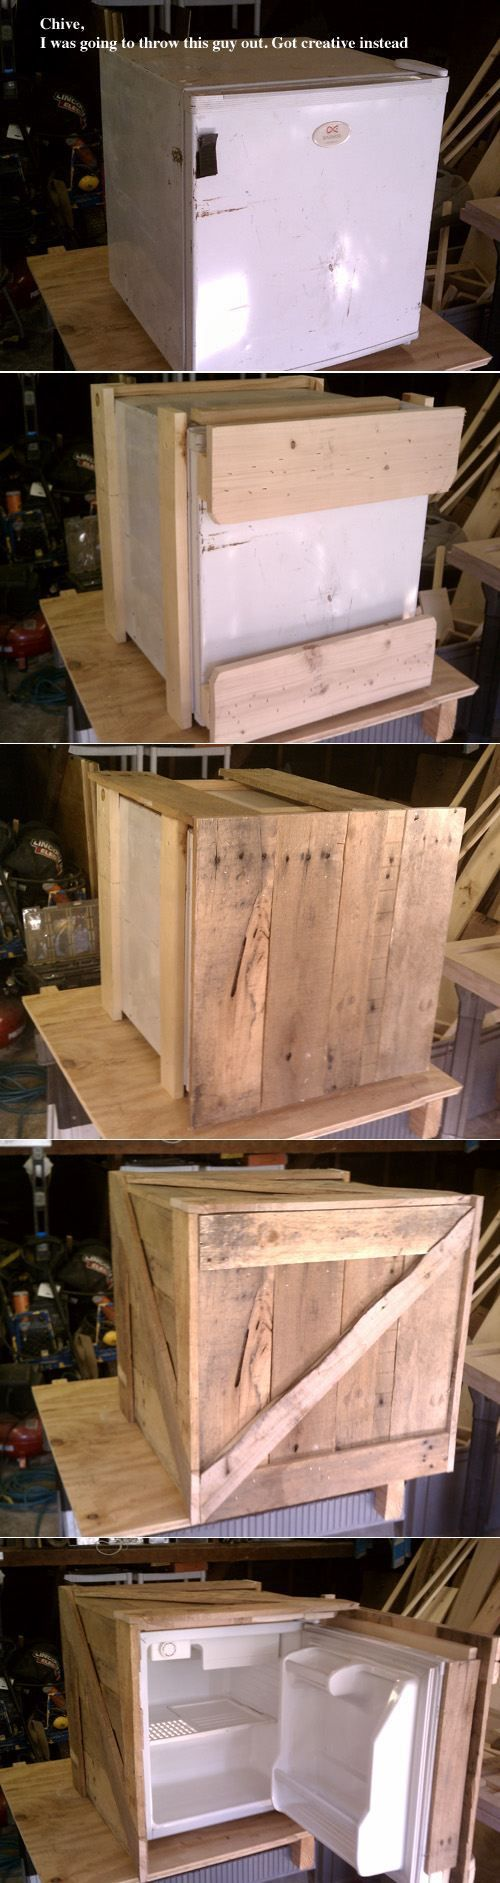 Ugly minifridge gets a facelift by having facade covered with upcycled pallet wood. More pallet design DIY ideas and inspiration at pinterest.com/...